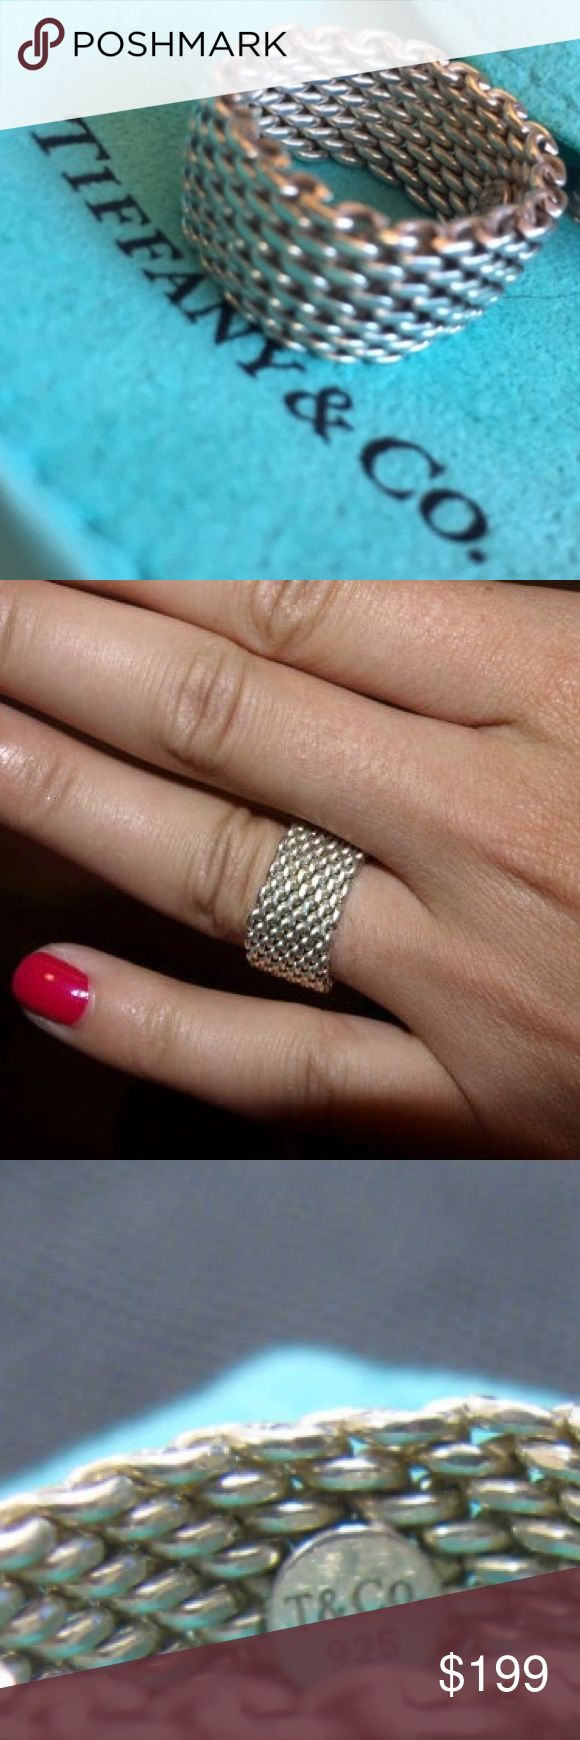 One time only price ‼️ AUTHENTIC Tiffany Mesh Ring This is a 100% authentic ring from Tiffany & Co. Comes in original blue signature Tiffany bag. Silver is cleaned and polished. *Will not trade for this.   *Smoke Free House  *Extremely quick shipping   *Thank you for your support!  *TAGS ONLY NOT: huda beauty MAC Jenner Kardashian Free People Bebe Aldo Bcbg Juicy Smashbox Anthropologie H&M Marc Jacobs Kate Spade Victoria's Secret Nasty Gal Chanel Urban Outfitters follow game Kylie contouring…